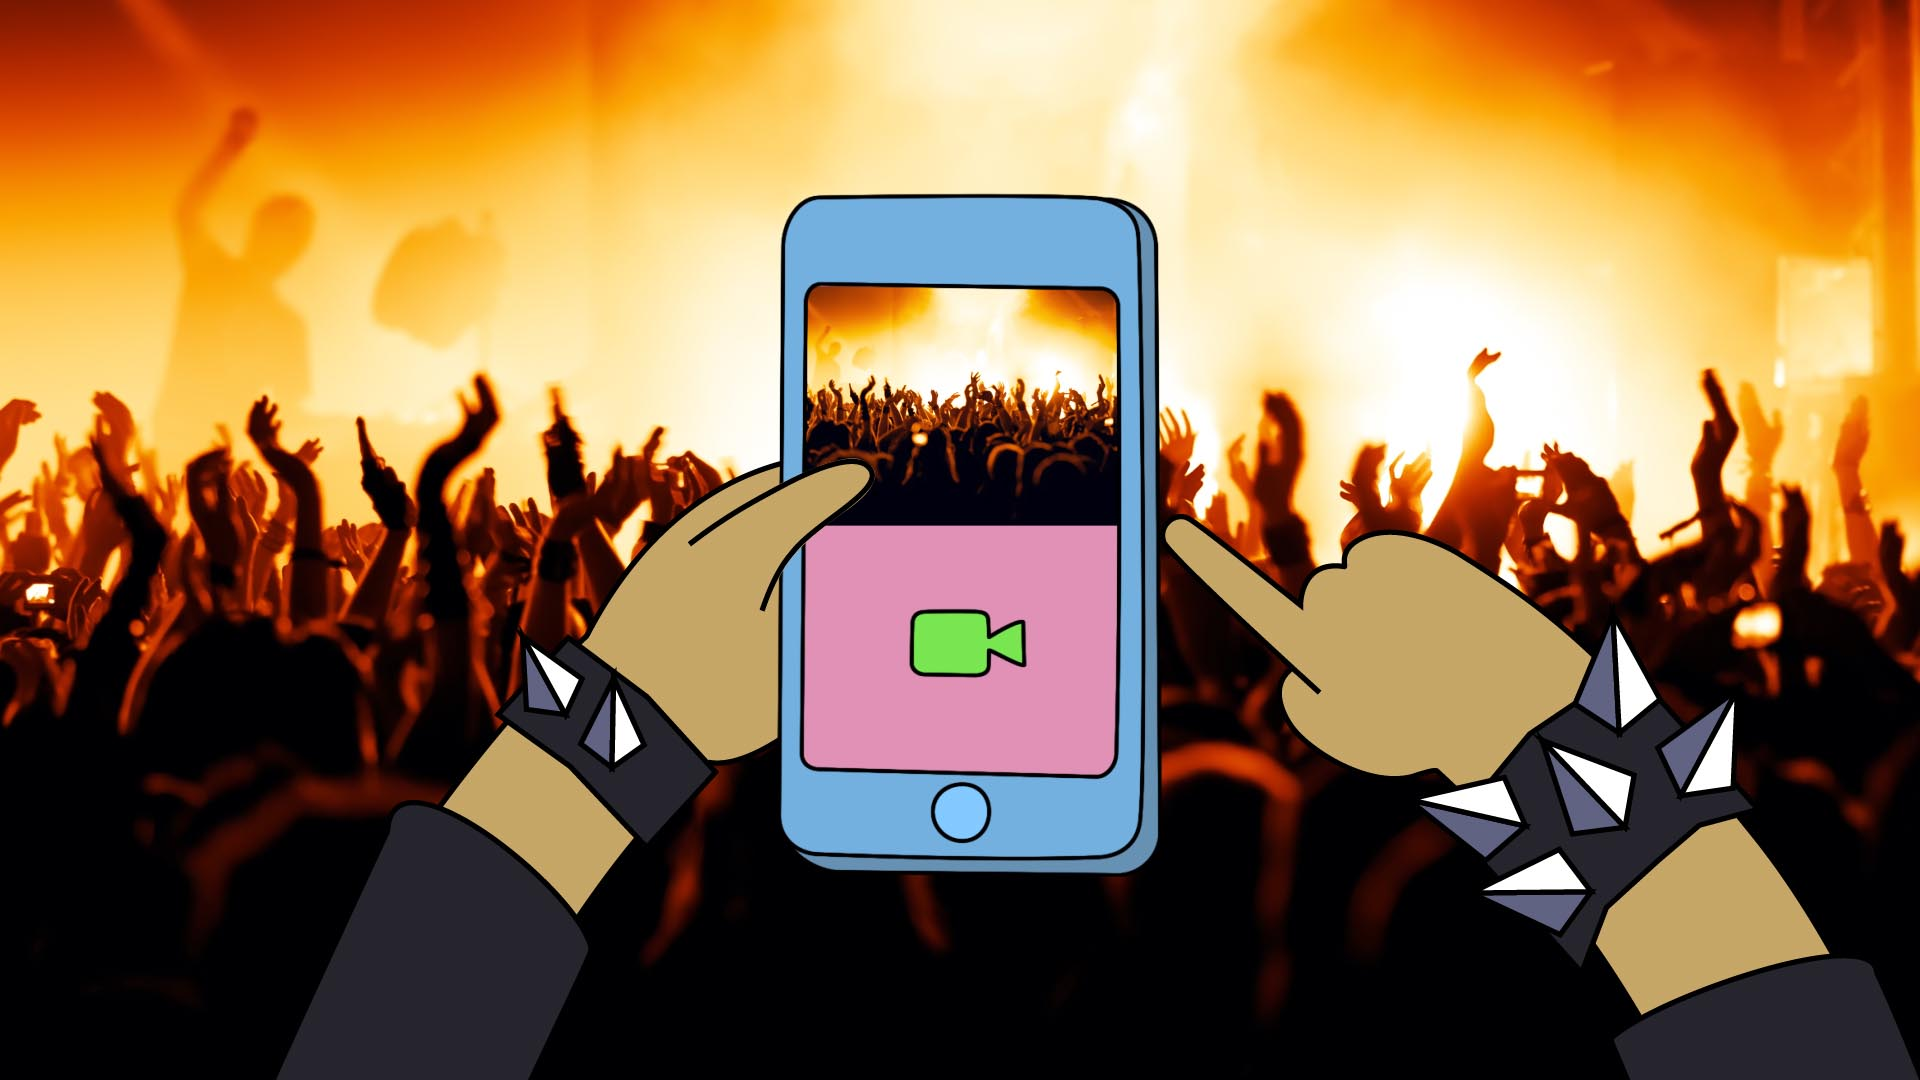 A 2D animated phone capturing a live-action video at a rock concert